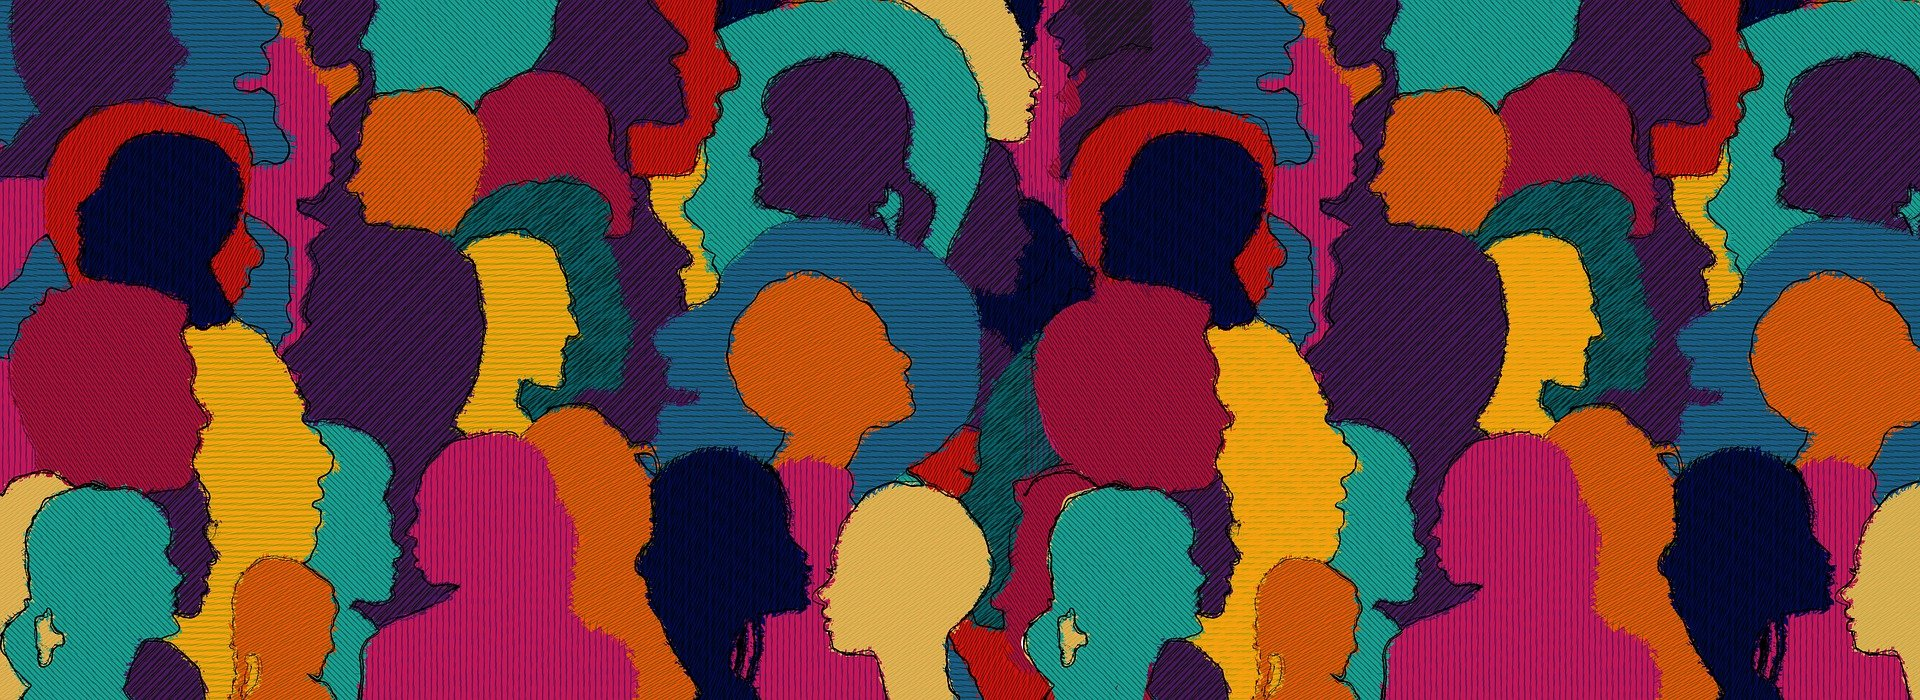 Illustration showing lots of different people's profiles in multi-colours in a collage